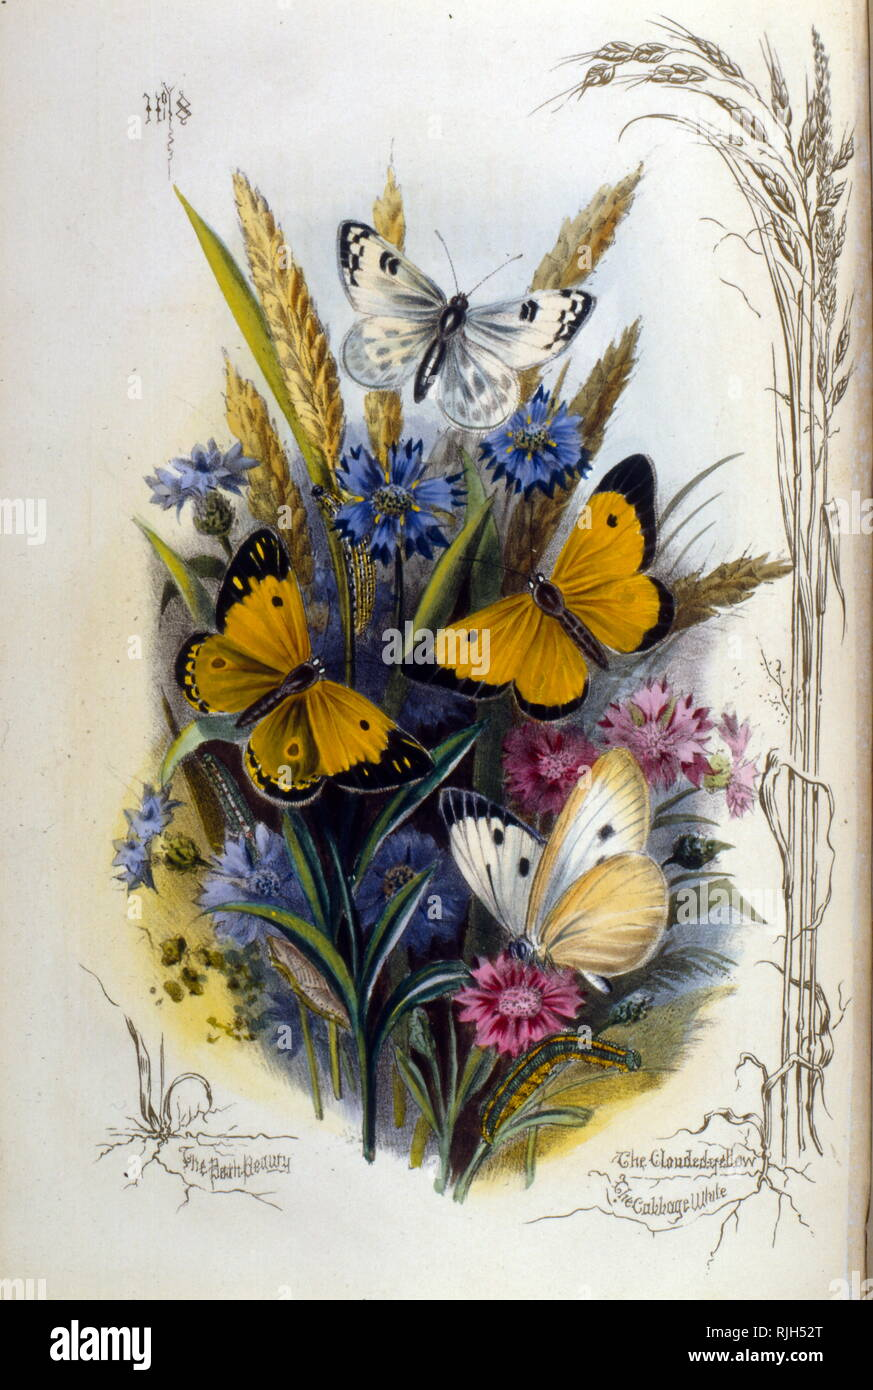 Illustration of various butterflies on blue and mauve flowers 1910 - Stock Image